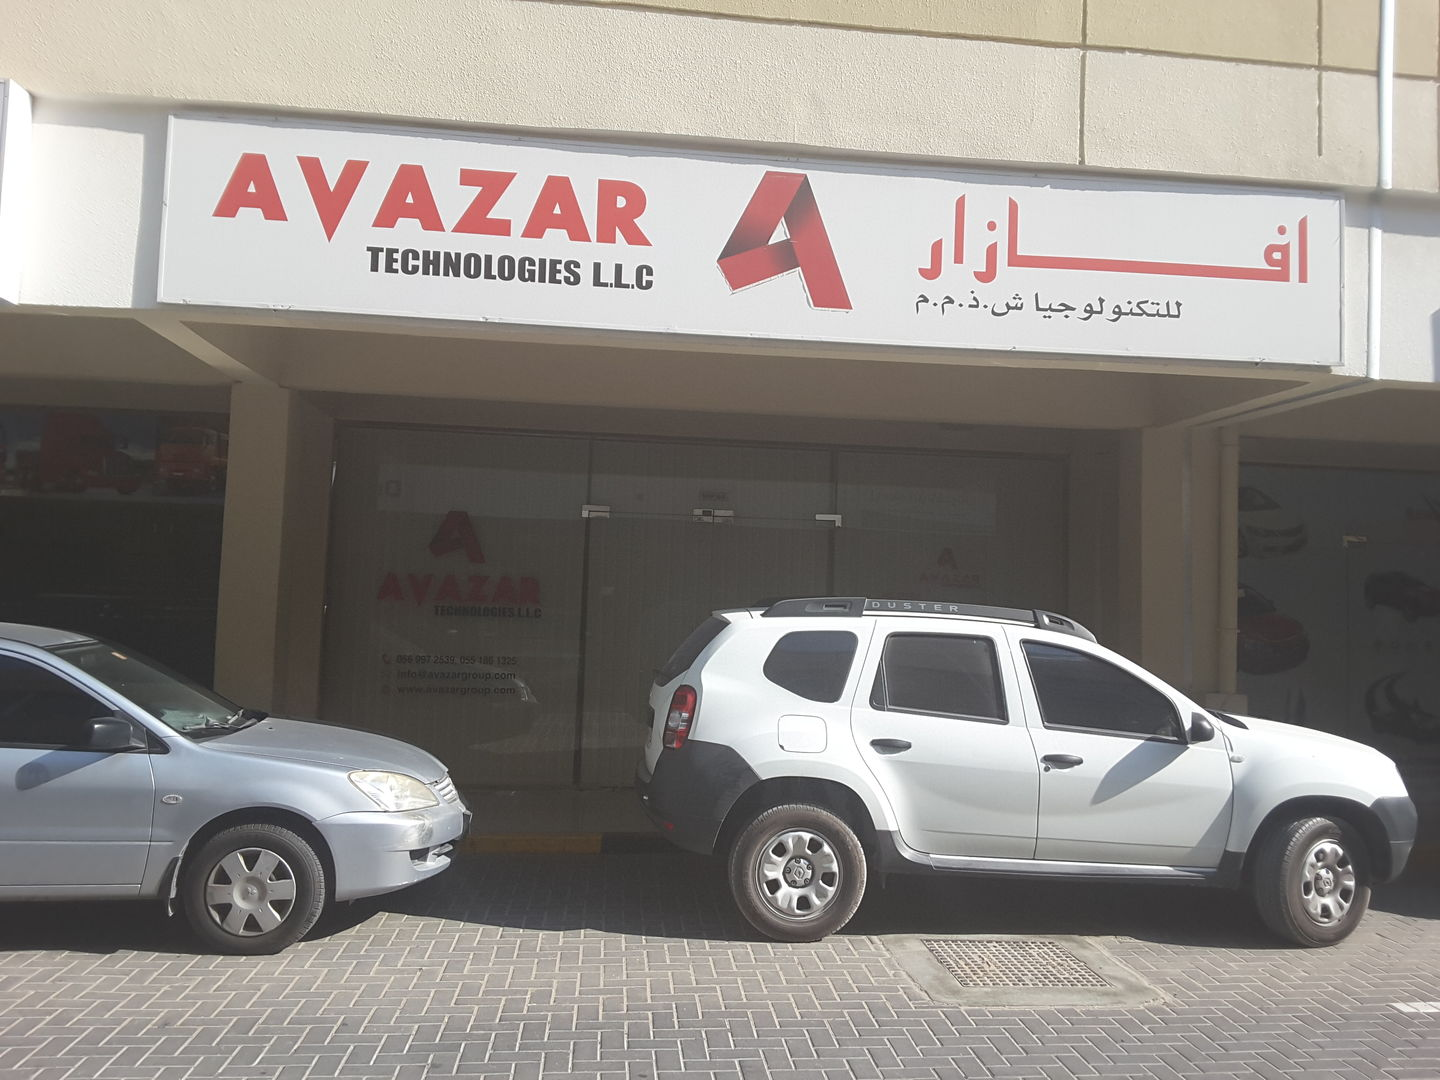 HiDubai-business-avazar-technologies-media-marketing-it-it-telecommunication-ras-al-khor-dubai-2